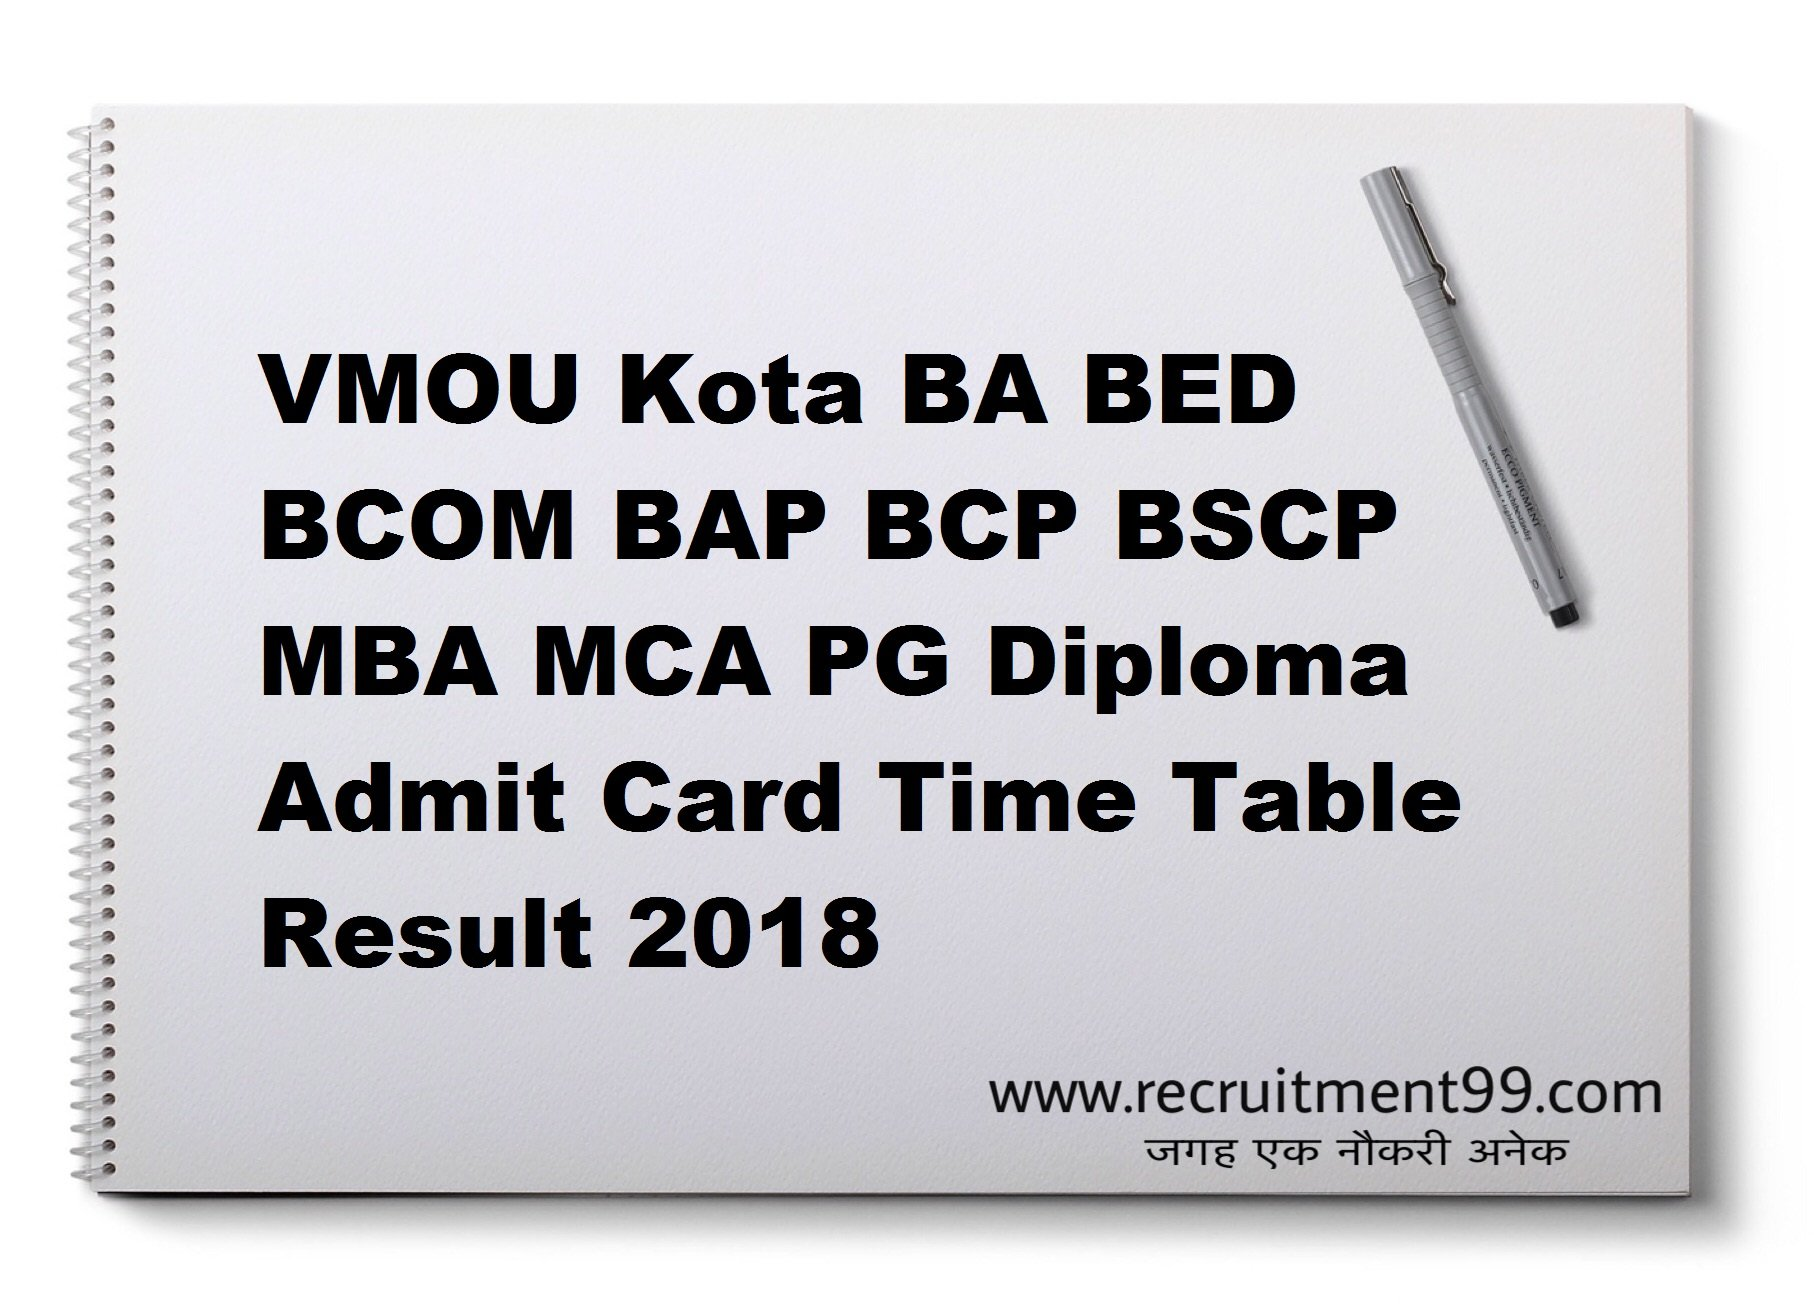 VMOU Kota BA BED BCOM BAP BCP BSCP MBA MCA PG Diploma Admit Card Time Table Result 2018